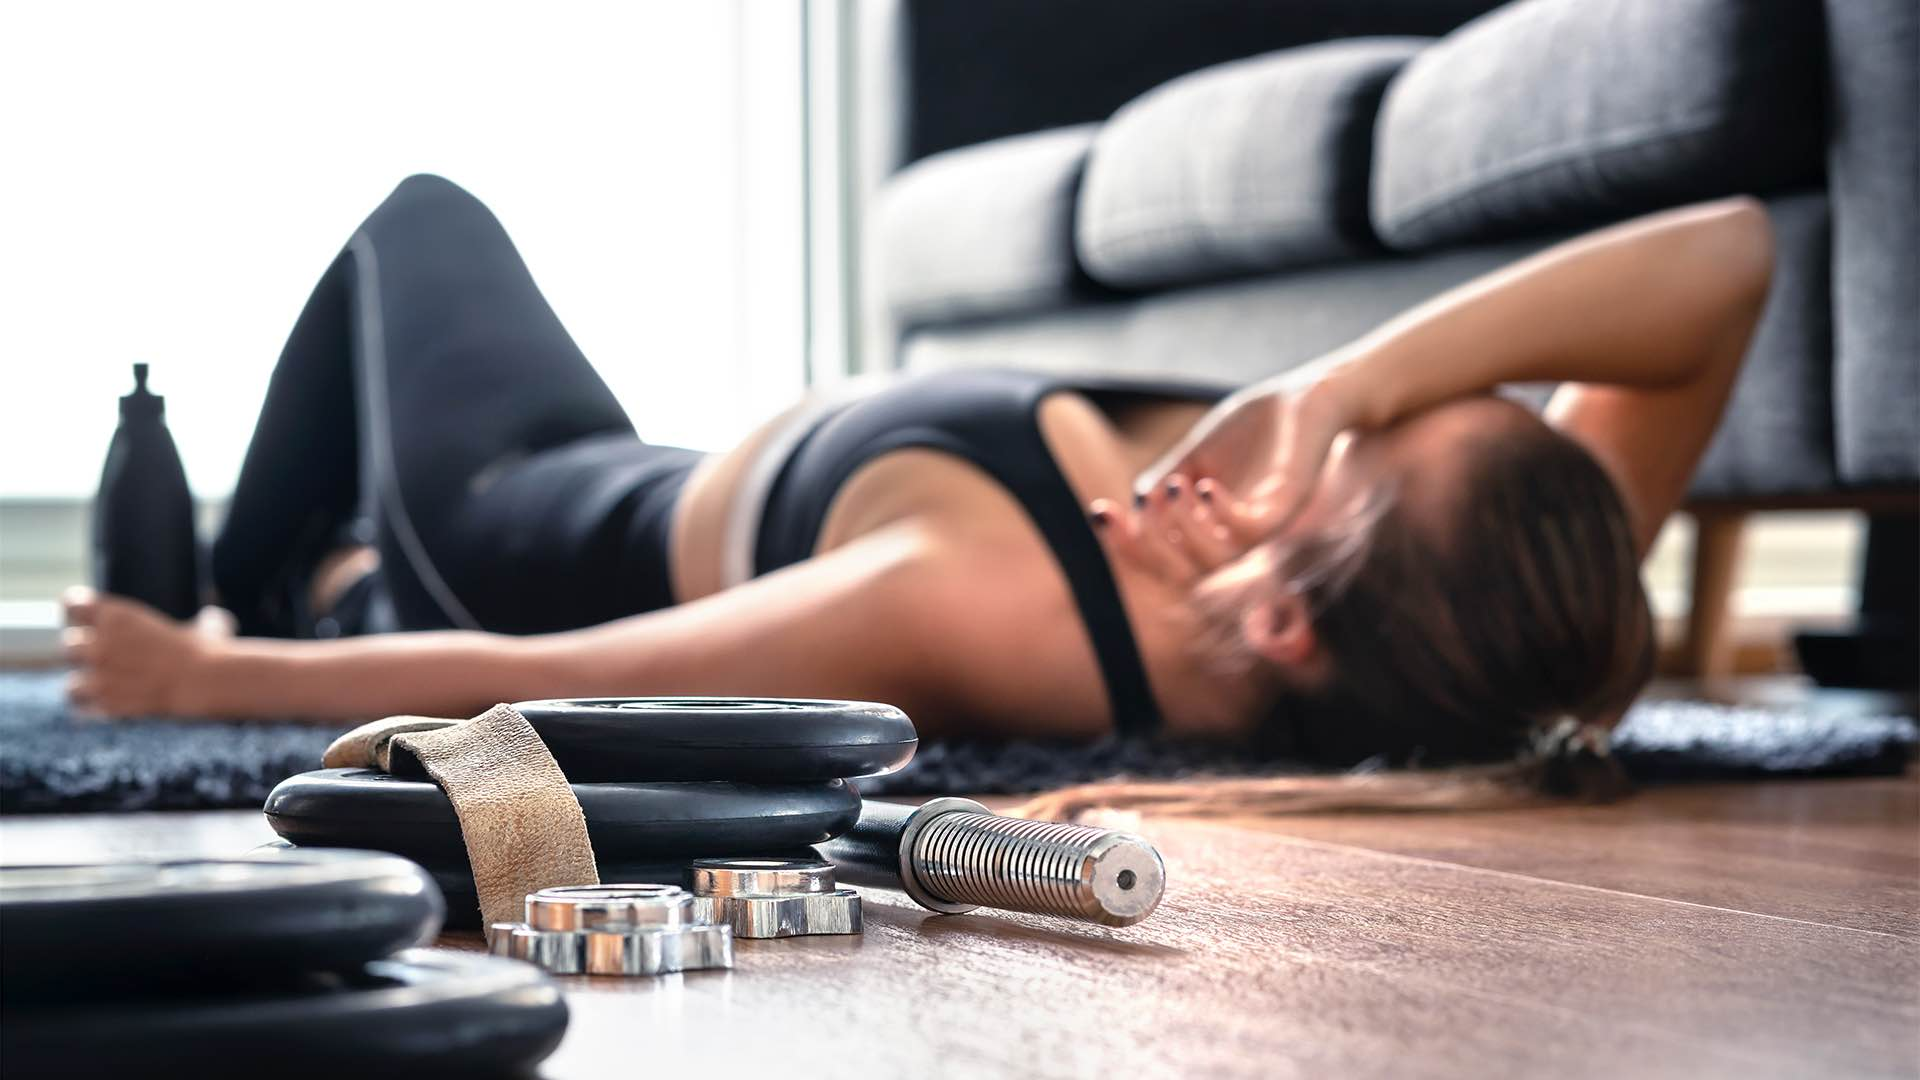 why not to take pre-workout